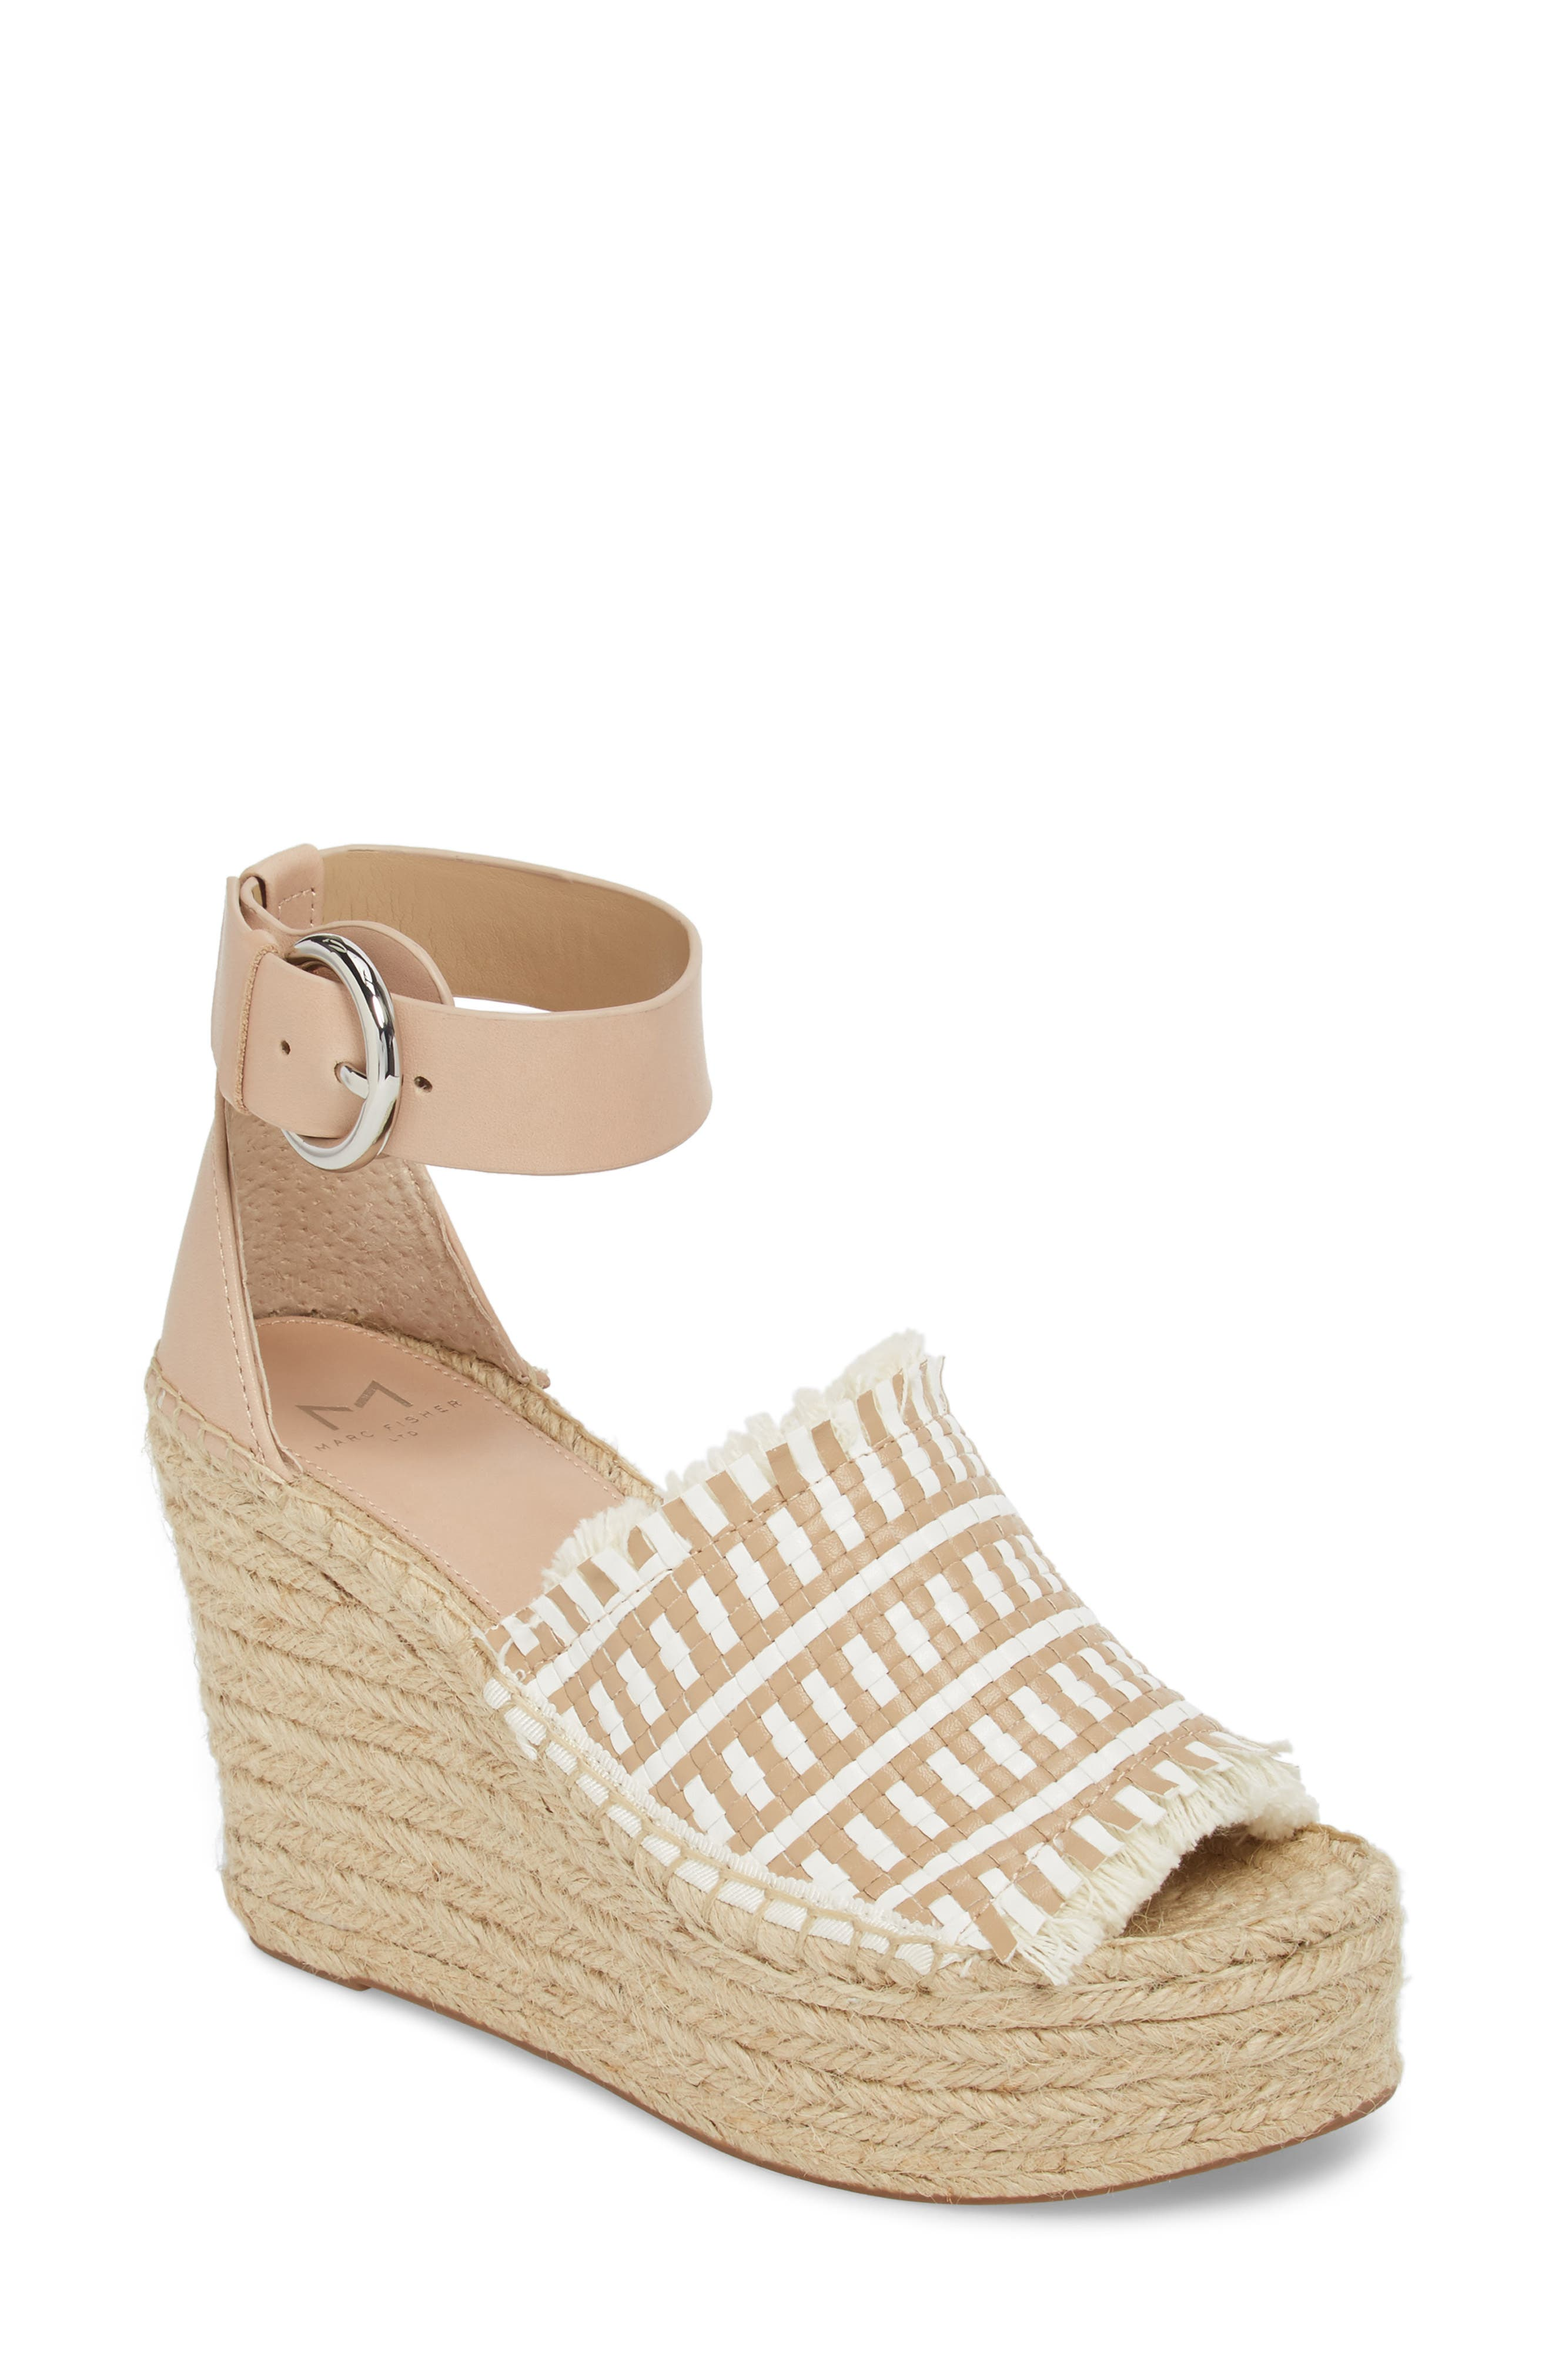 Andrew Espadrille Wedge Sandal,                             Main thumbnail 2, color,